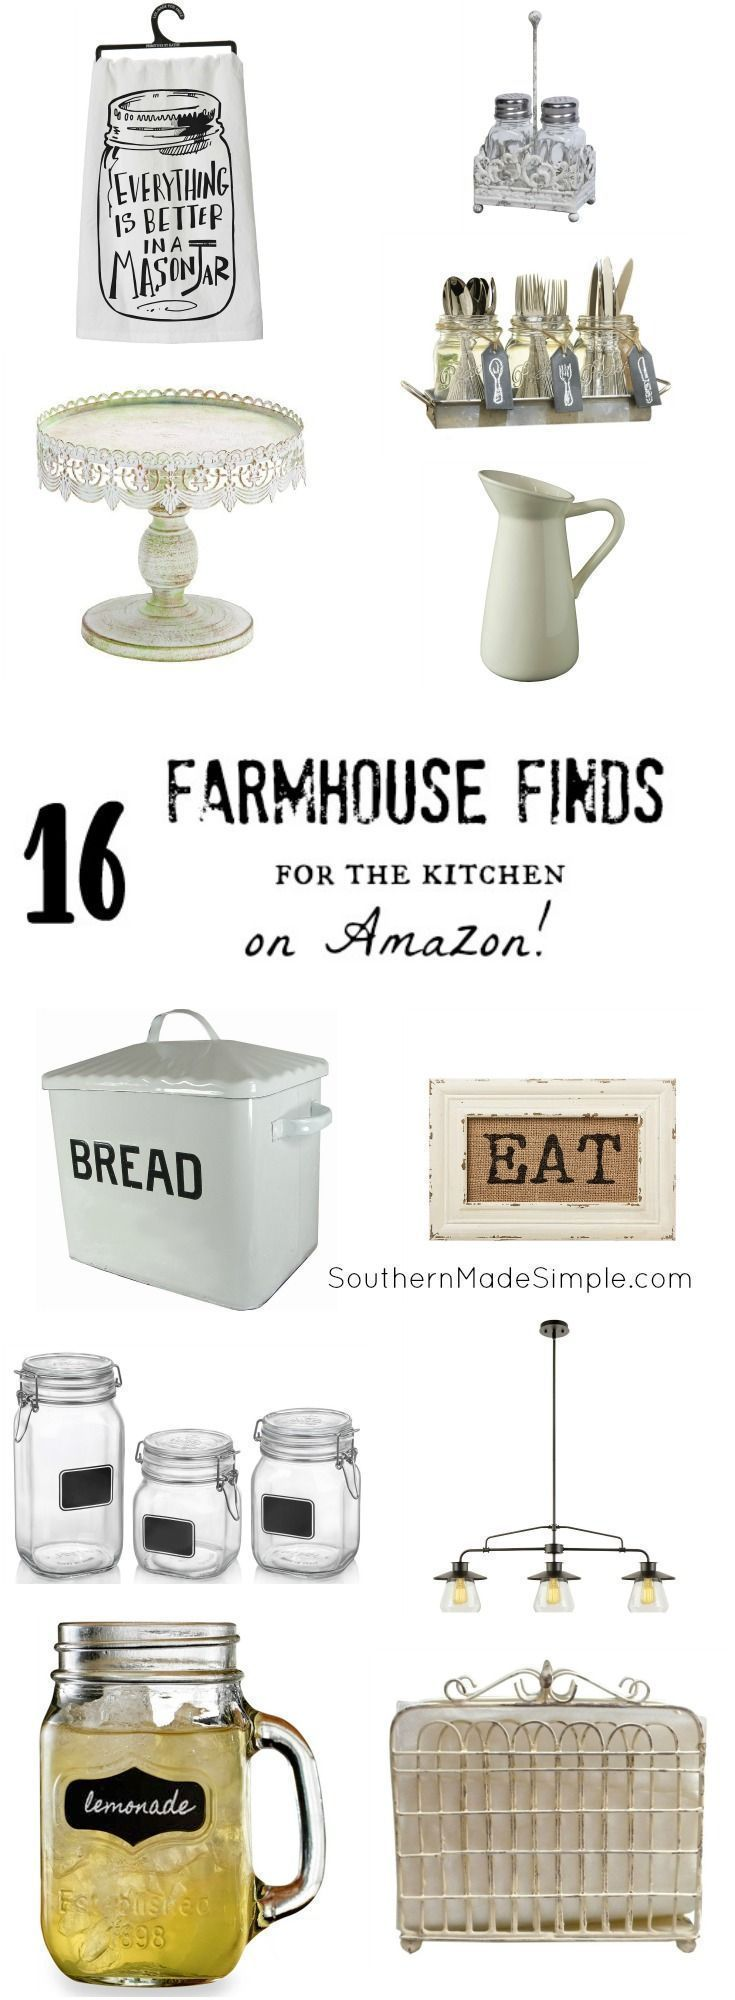 Farmhouse Finds for the Kitchen on Amazon Country